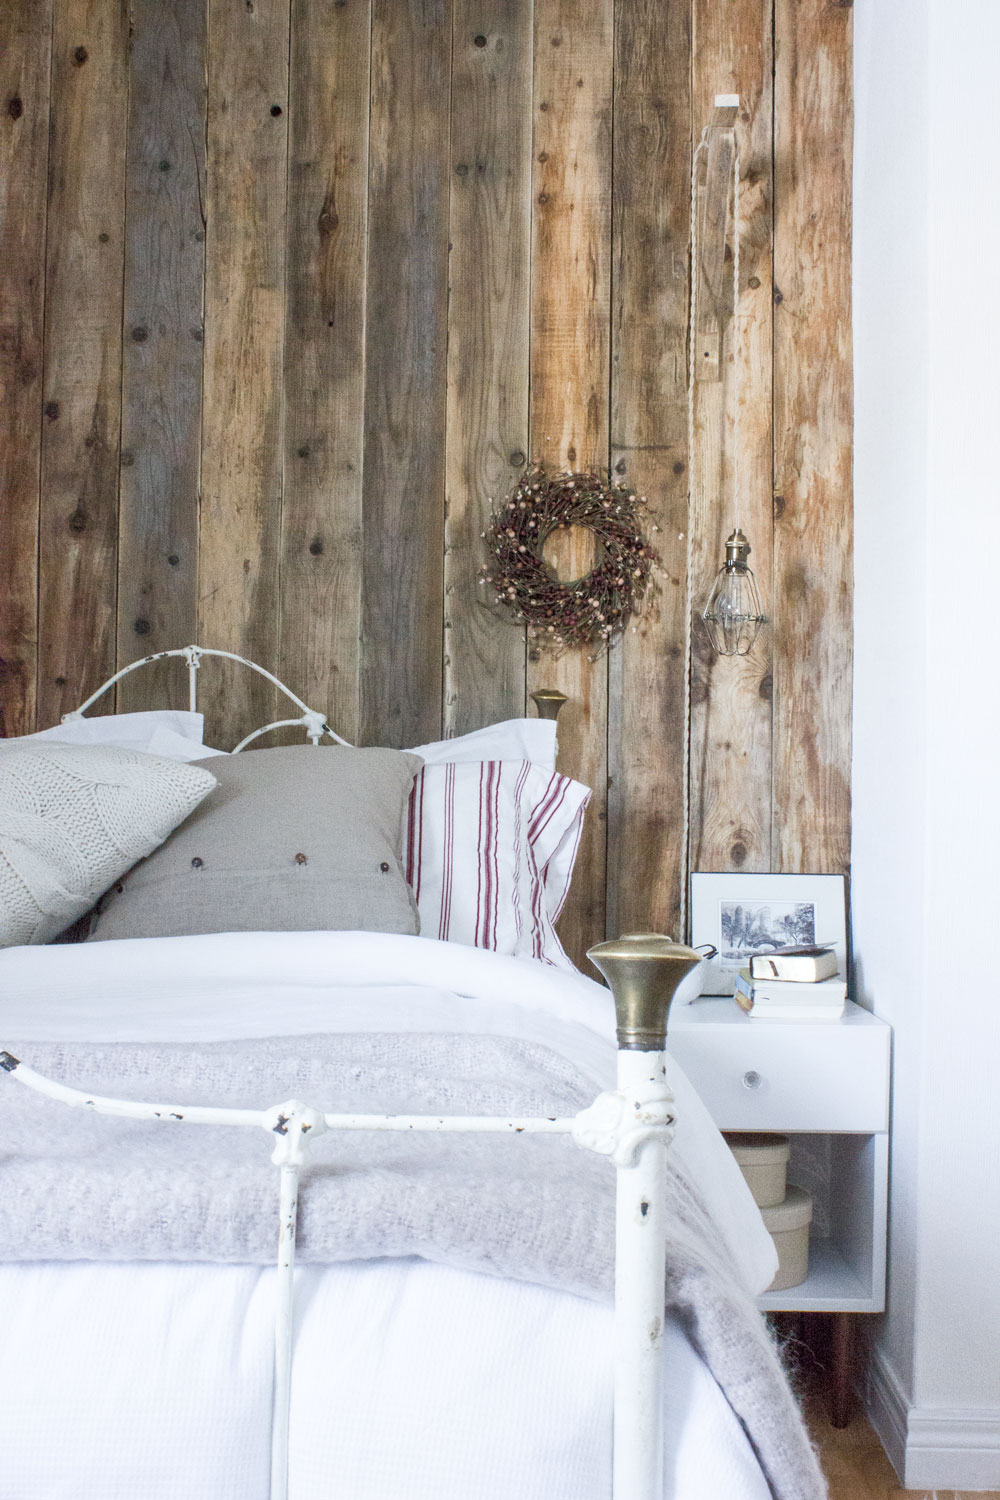 Recent guest room project - click for details